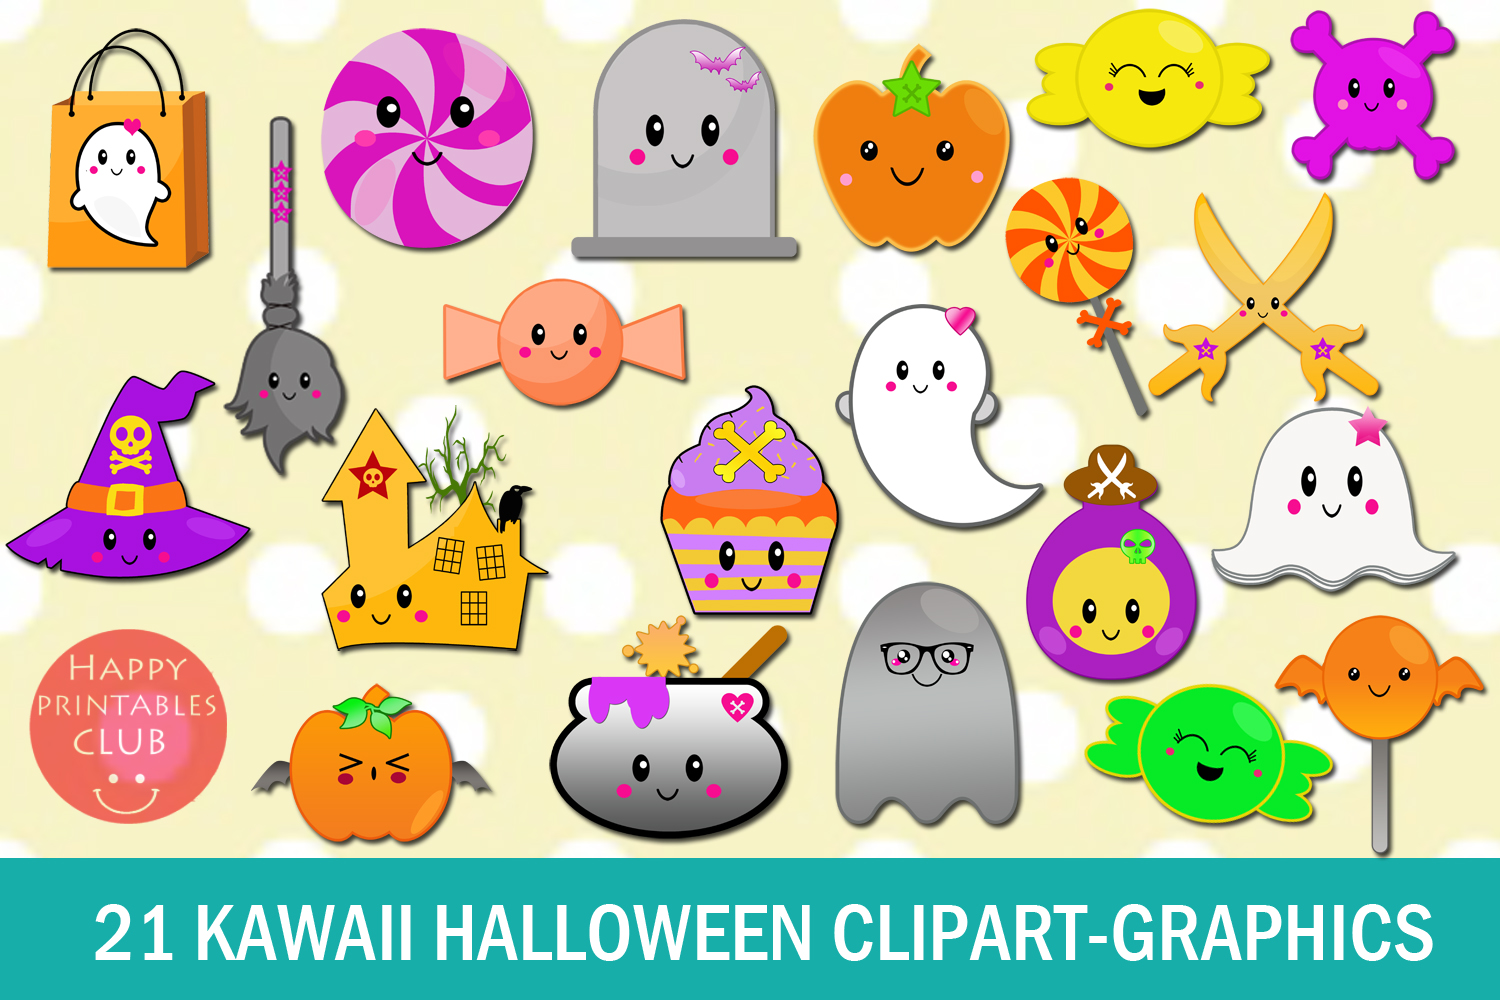 Download Free 21 Cute Kawaii Halloween Graphics Clipart Graphic By Happy for Cricut Explore, Silhouette and other cutting machines.